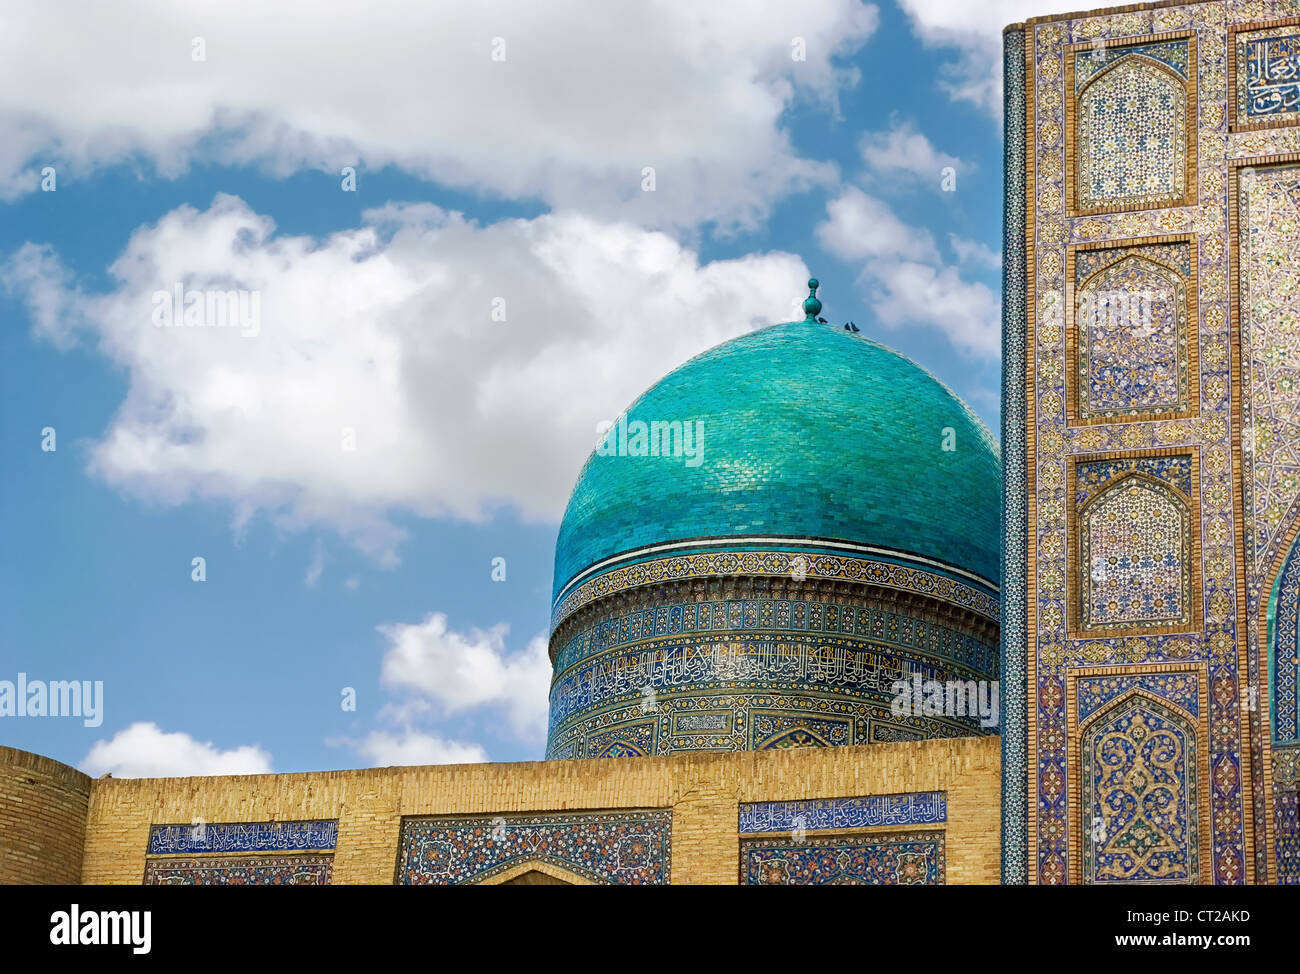 Détail de l'architecture traditionnelle de l'Ouzbékistan Photo Stock